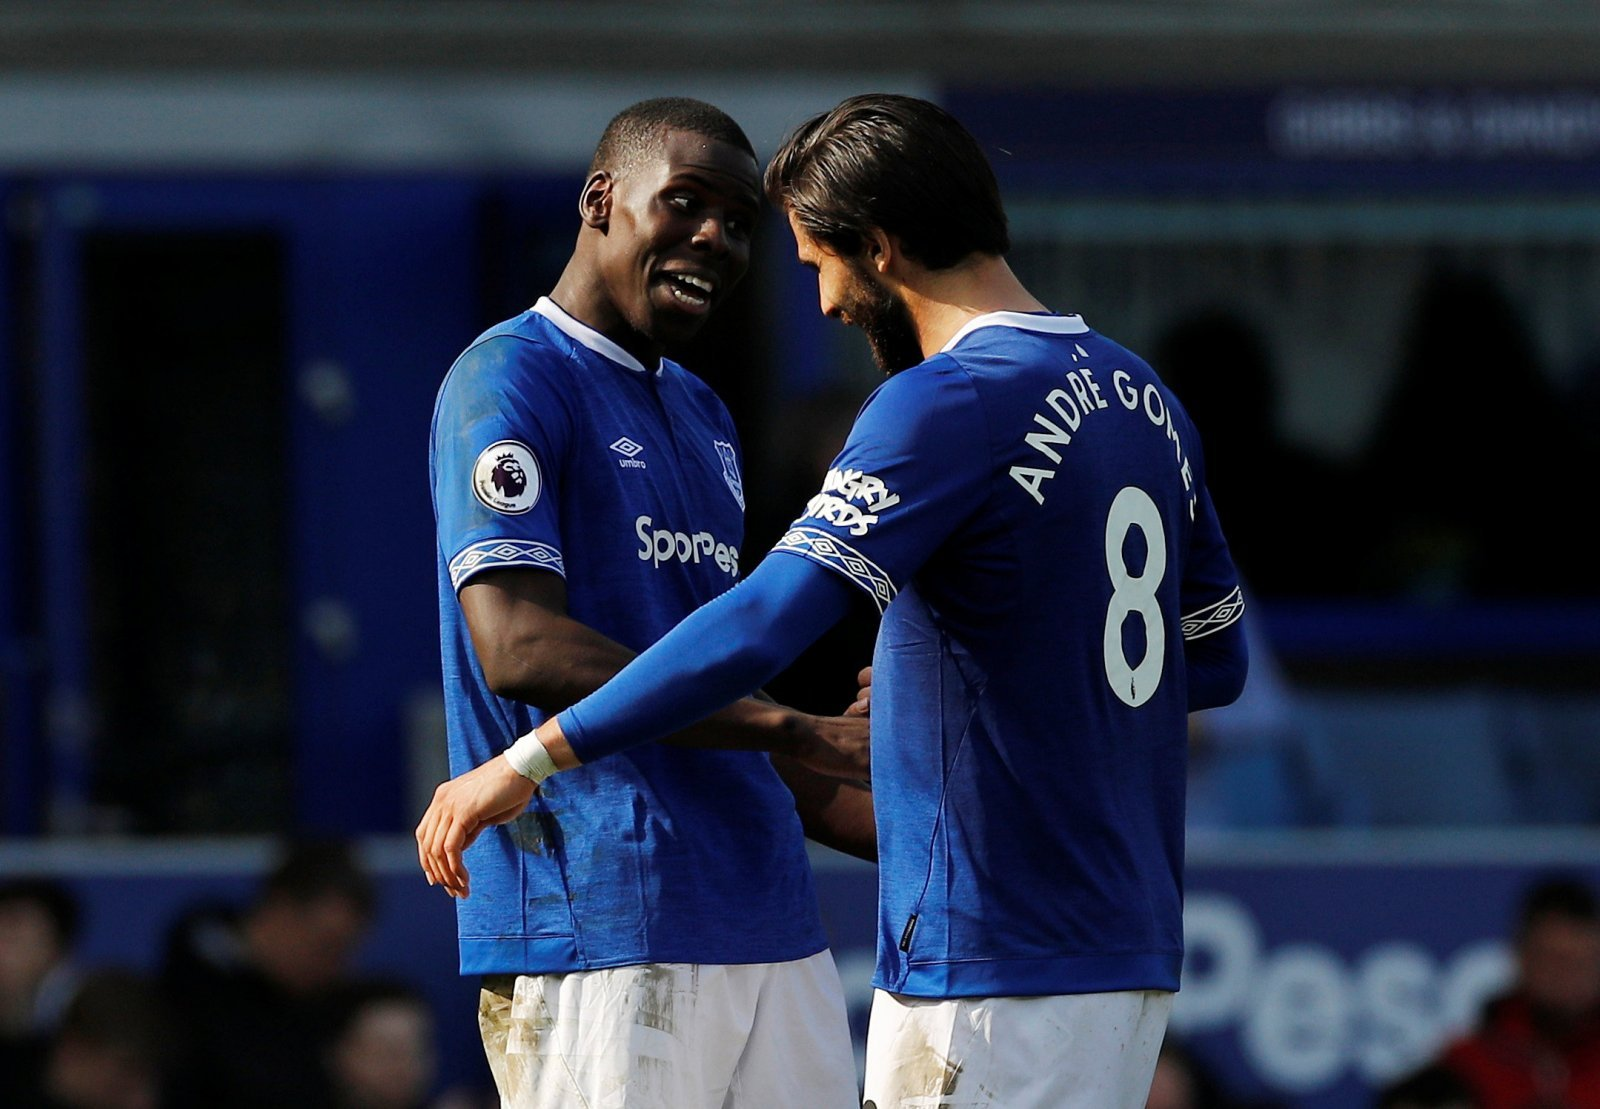 Everton: Andre Gomes would be a symbolic signing